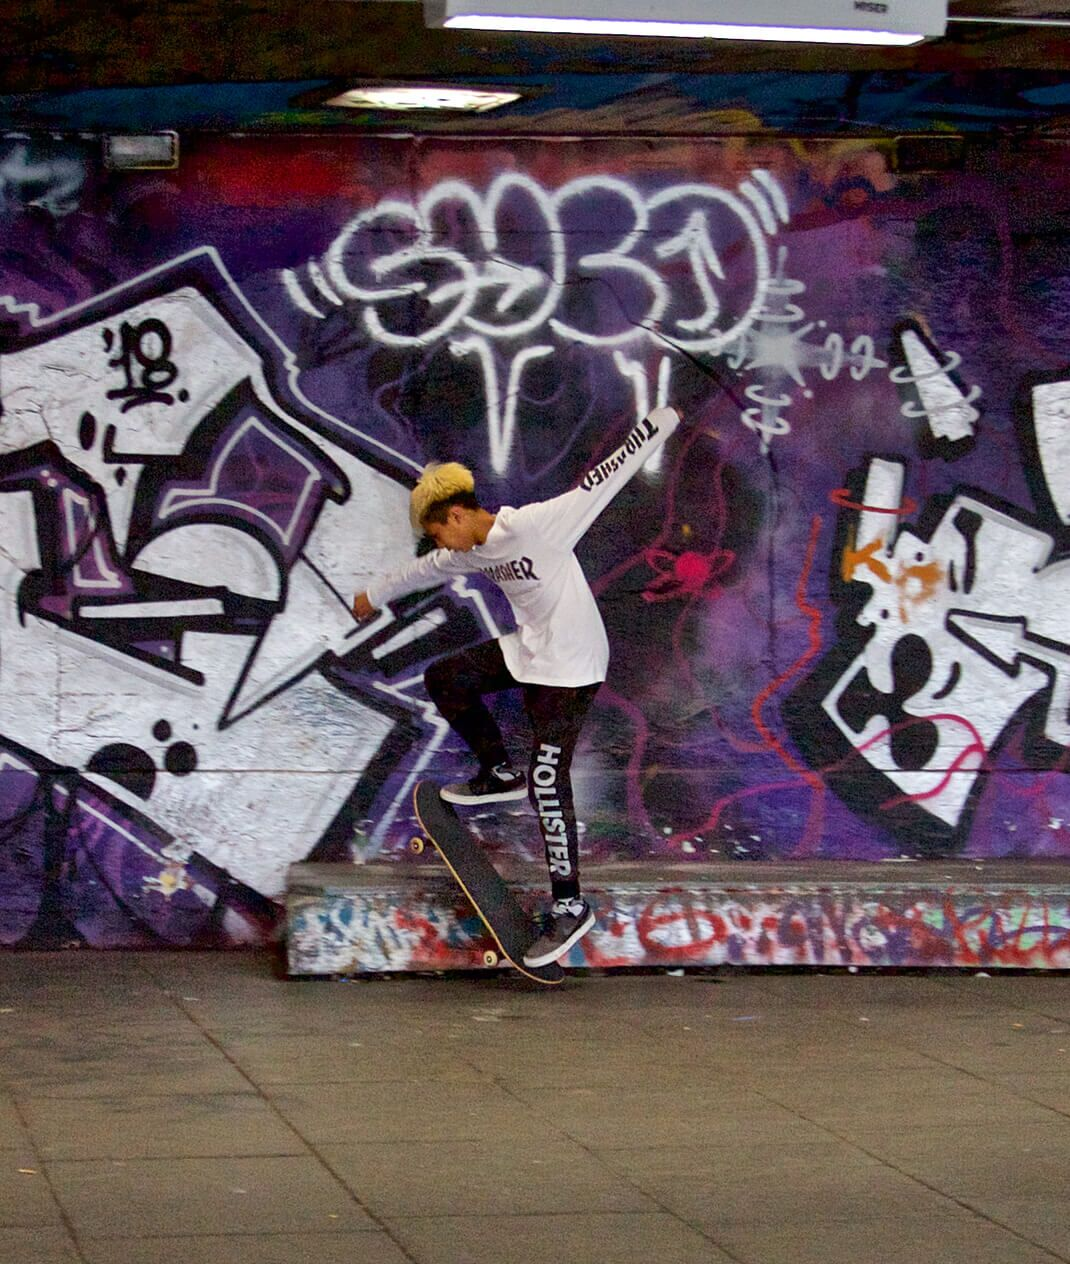 boy with skateboard against purple graffiti wall